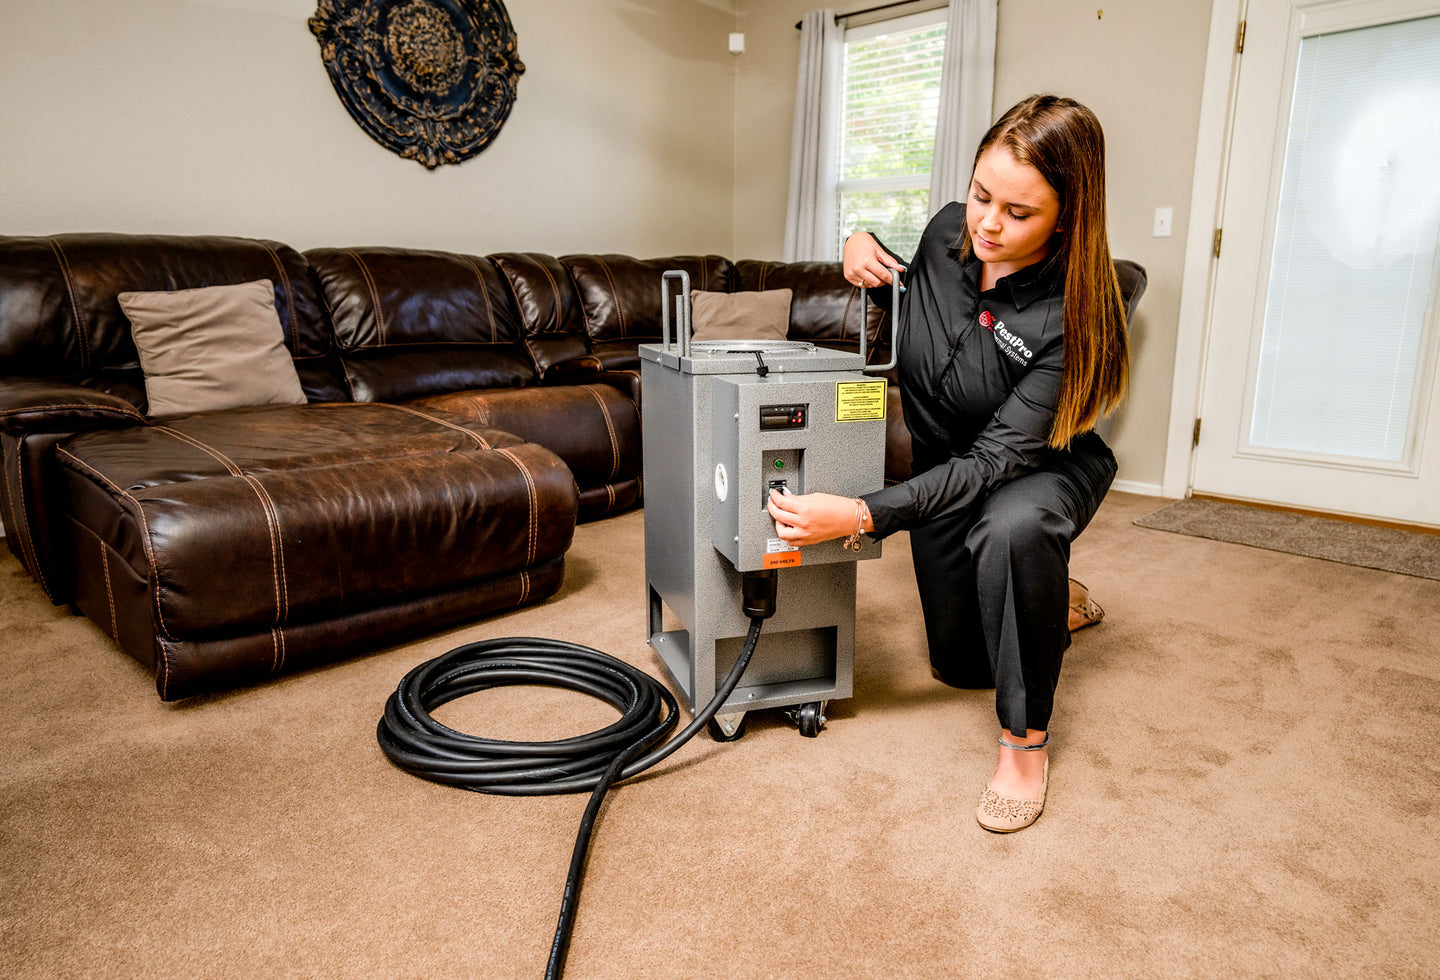 Residential Bed Bug Heater Solutions